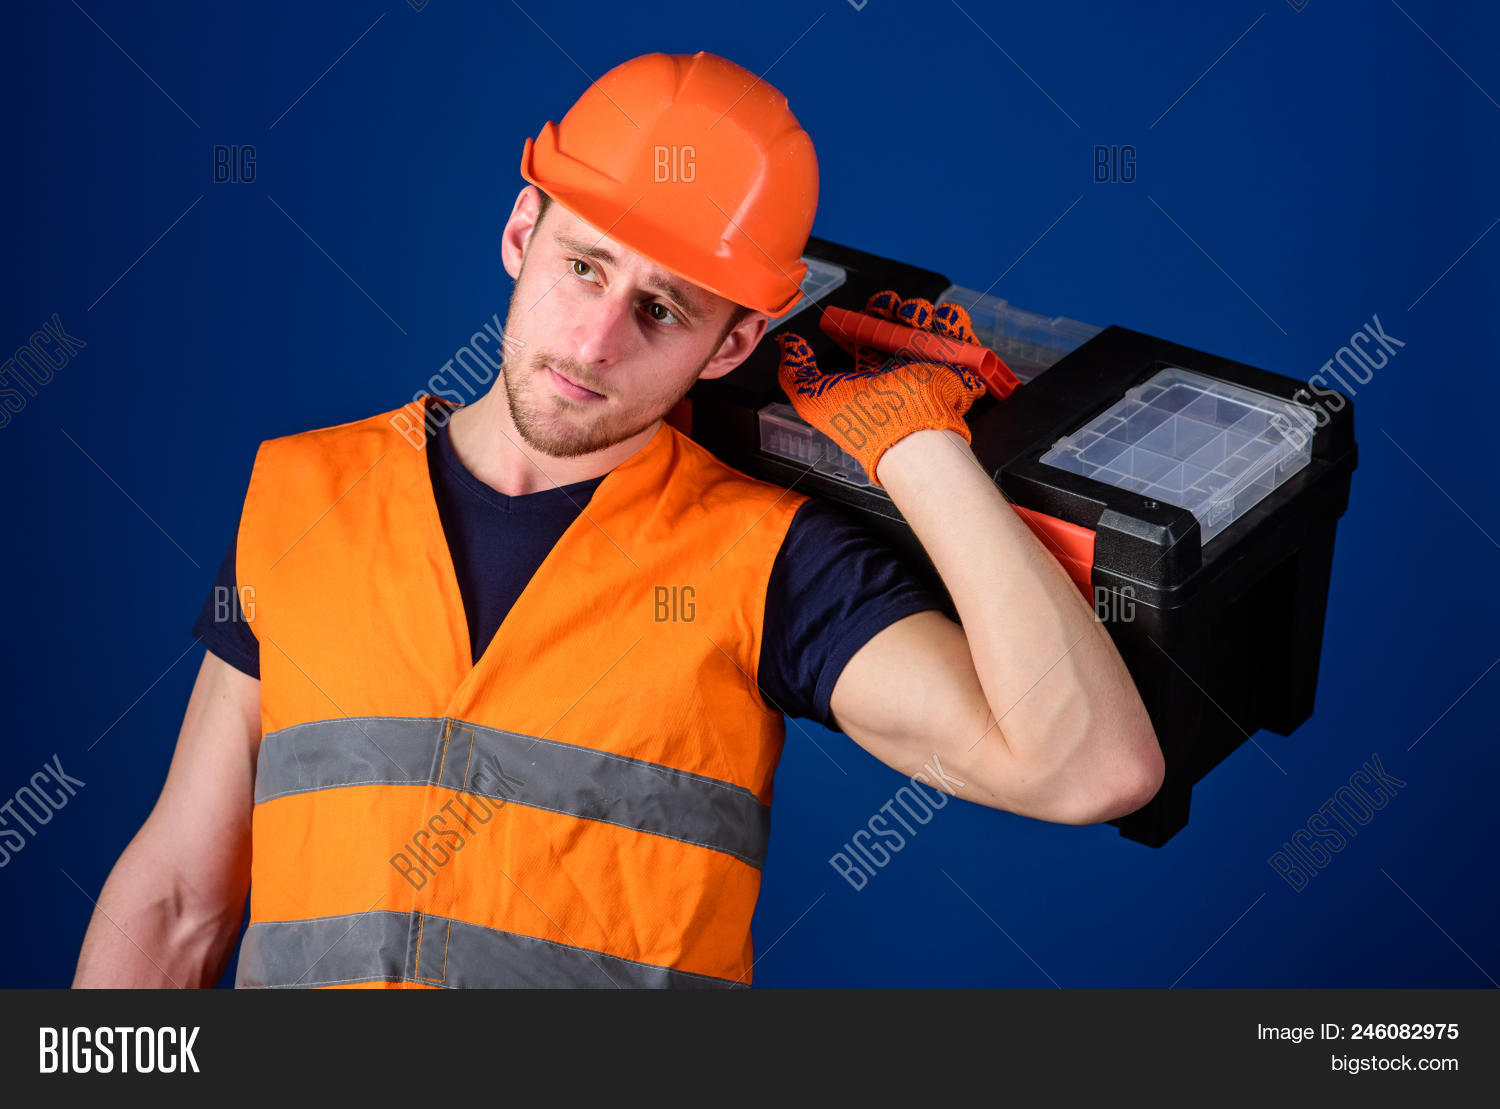 background,beard,bearded,blue,build,builder,carry,case,caucasian,concept,construction,constructor,contractor,developer,engineering,equipment,face,guy,handsome,hard,hat,helmet,helpful,hold,laborer,man,mechanic,problem,professional,ready,renovation,repair,repairer,repairman,service,shoulder,solve,strong,technician,thoughtful,tool,toolbox,uniform,unshaven,work,worker